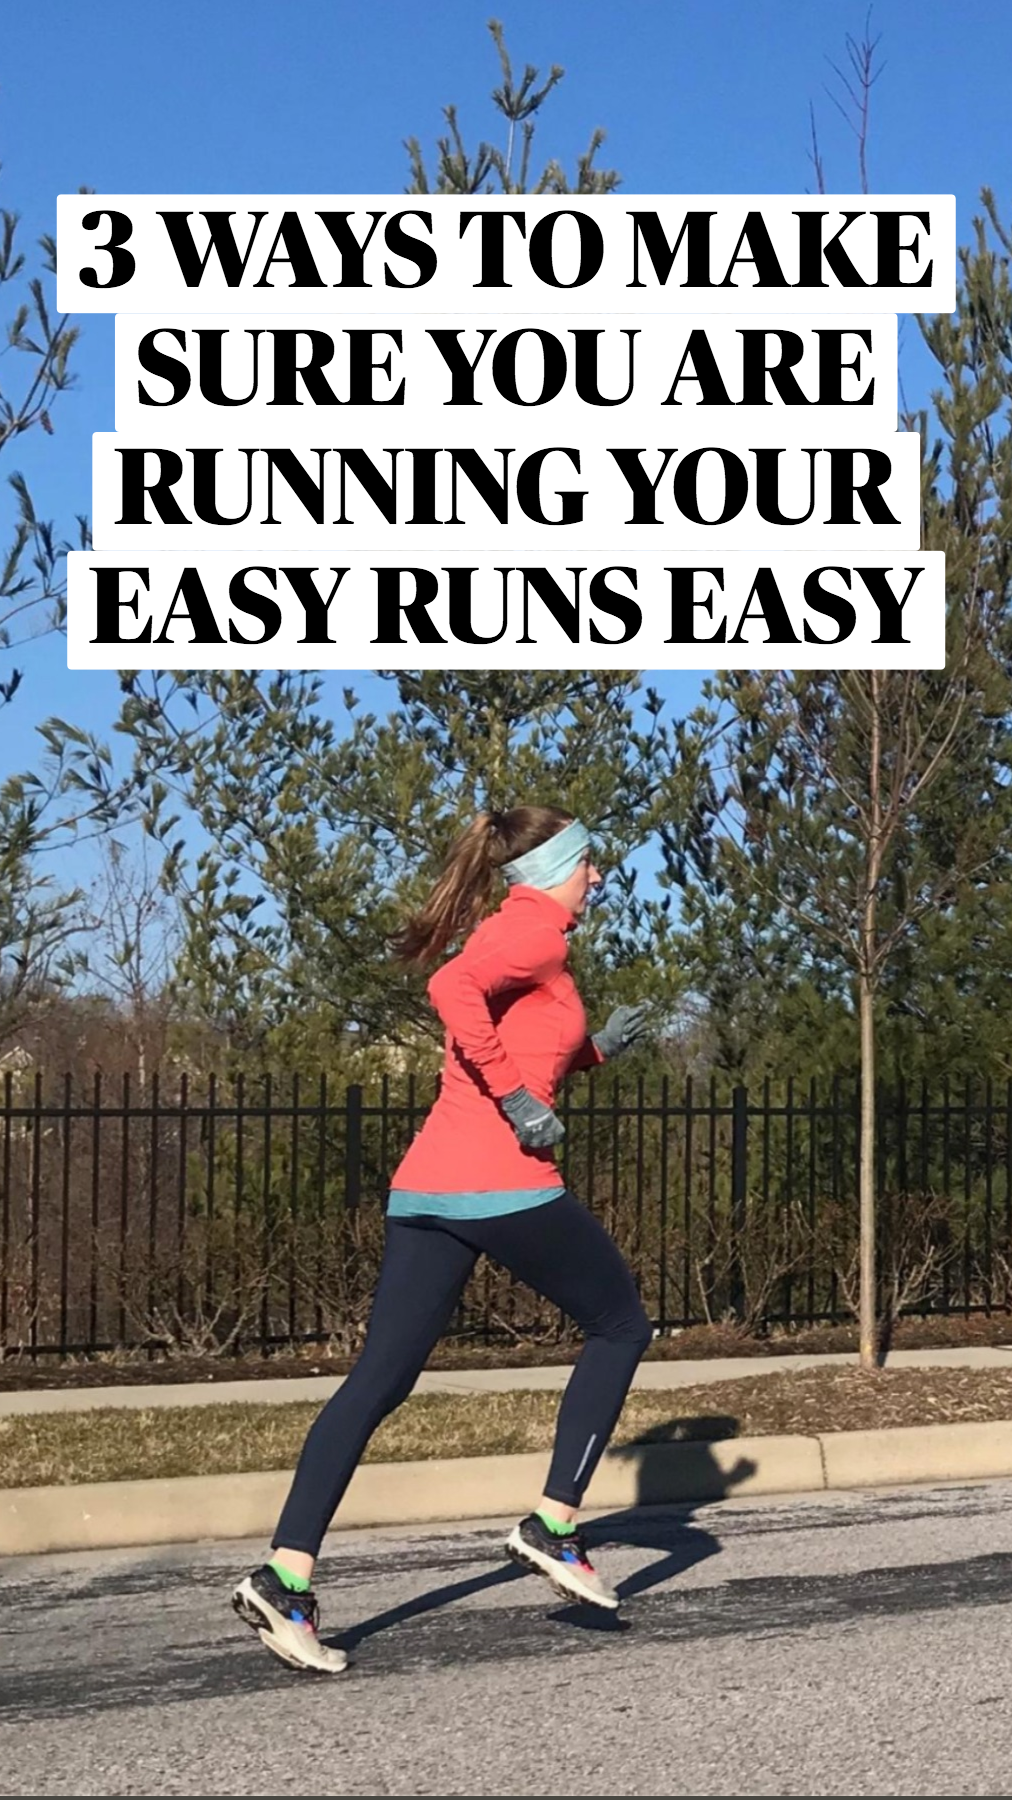 3 Ways to Make Sure You Are Running Your Easy Runs Easy